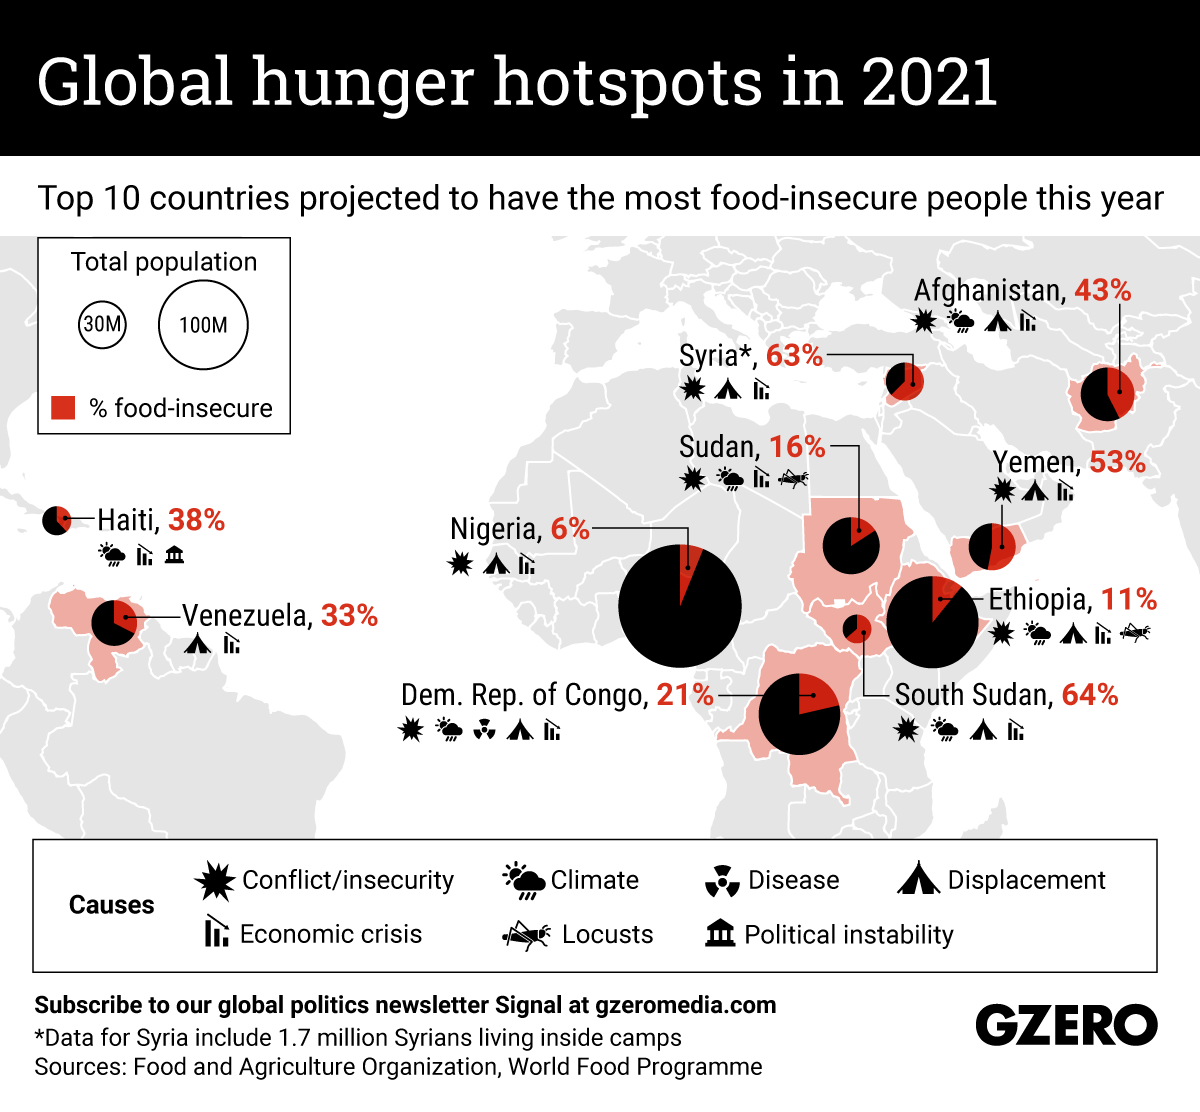 The Graphic Truth: Global hunger hotspots in 2021